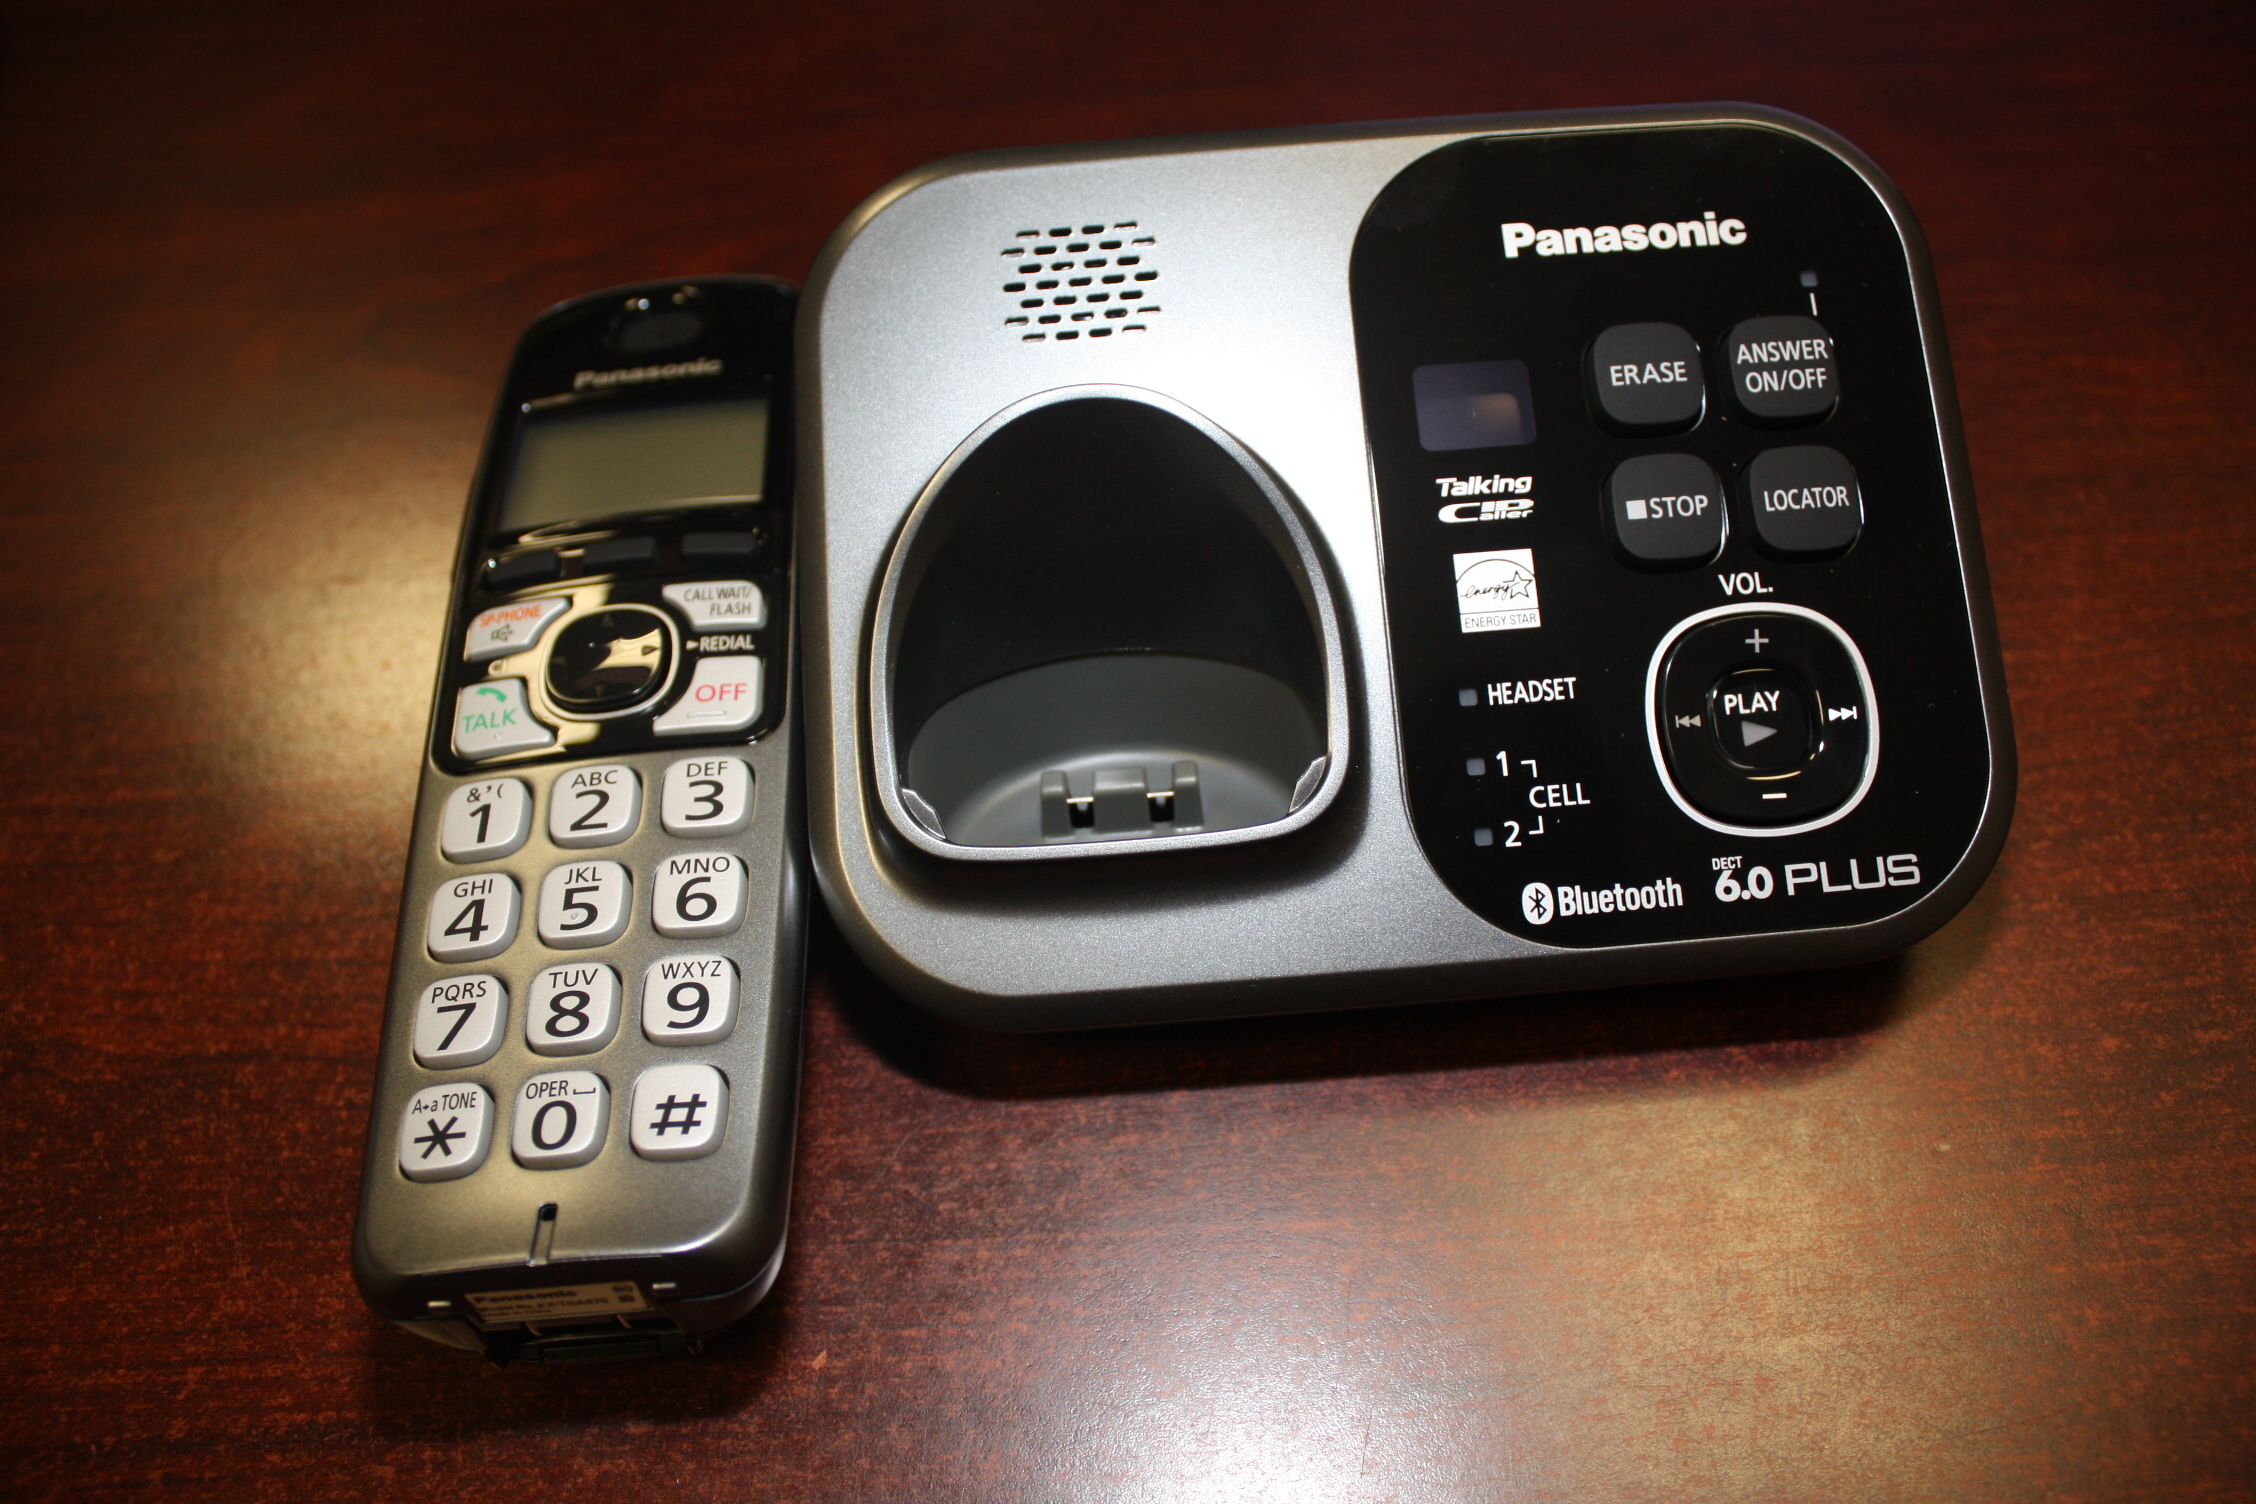 panasonic answering machine 6 0 manual